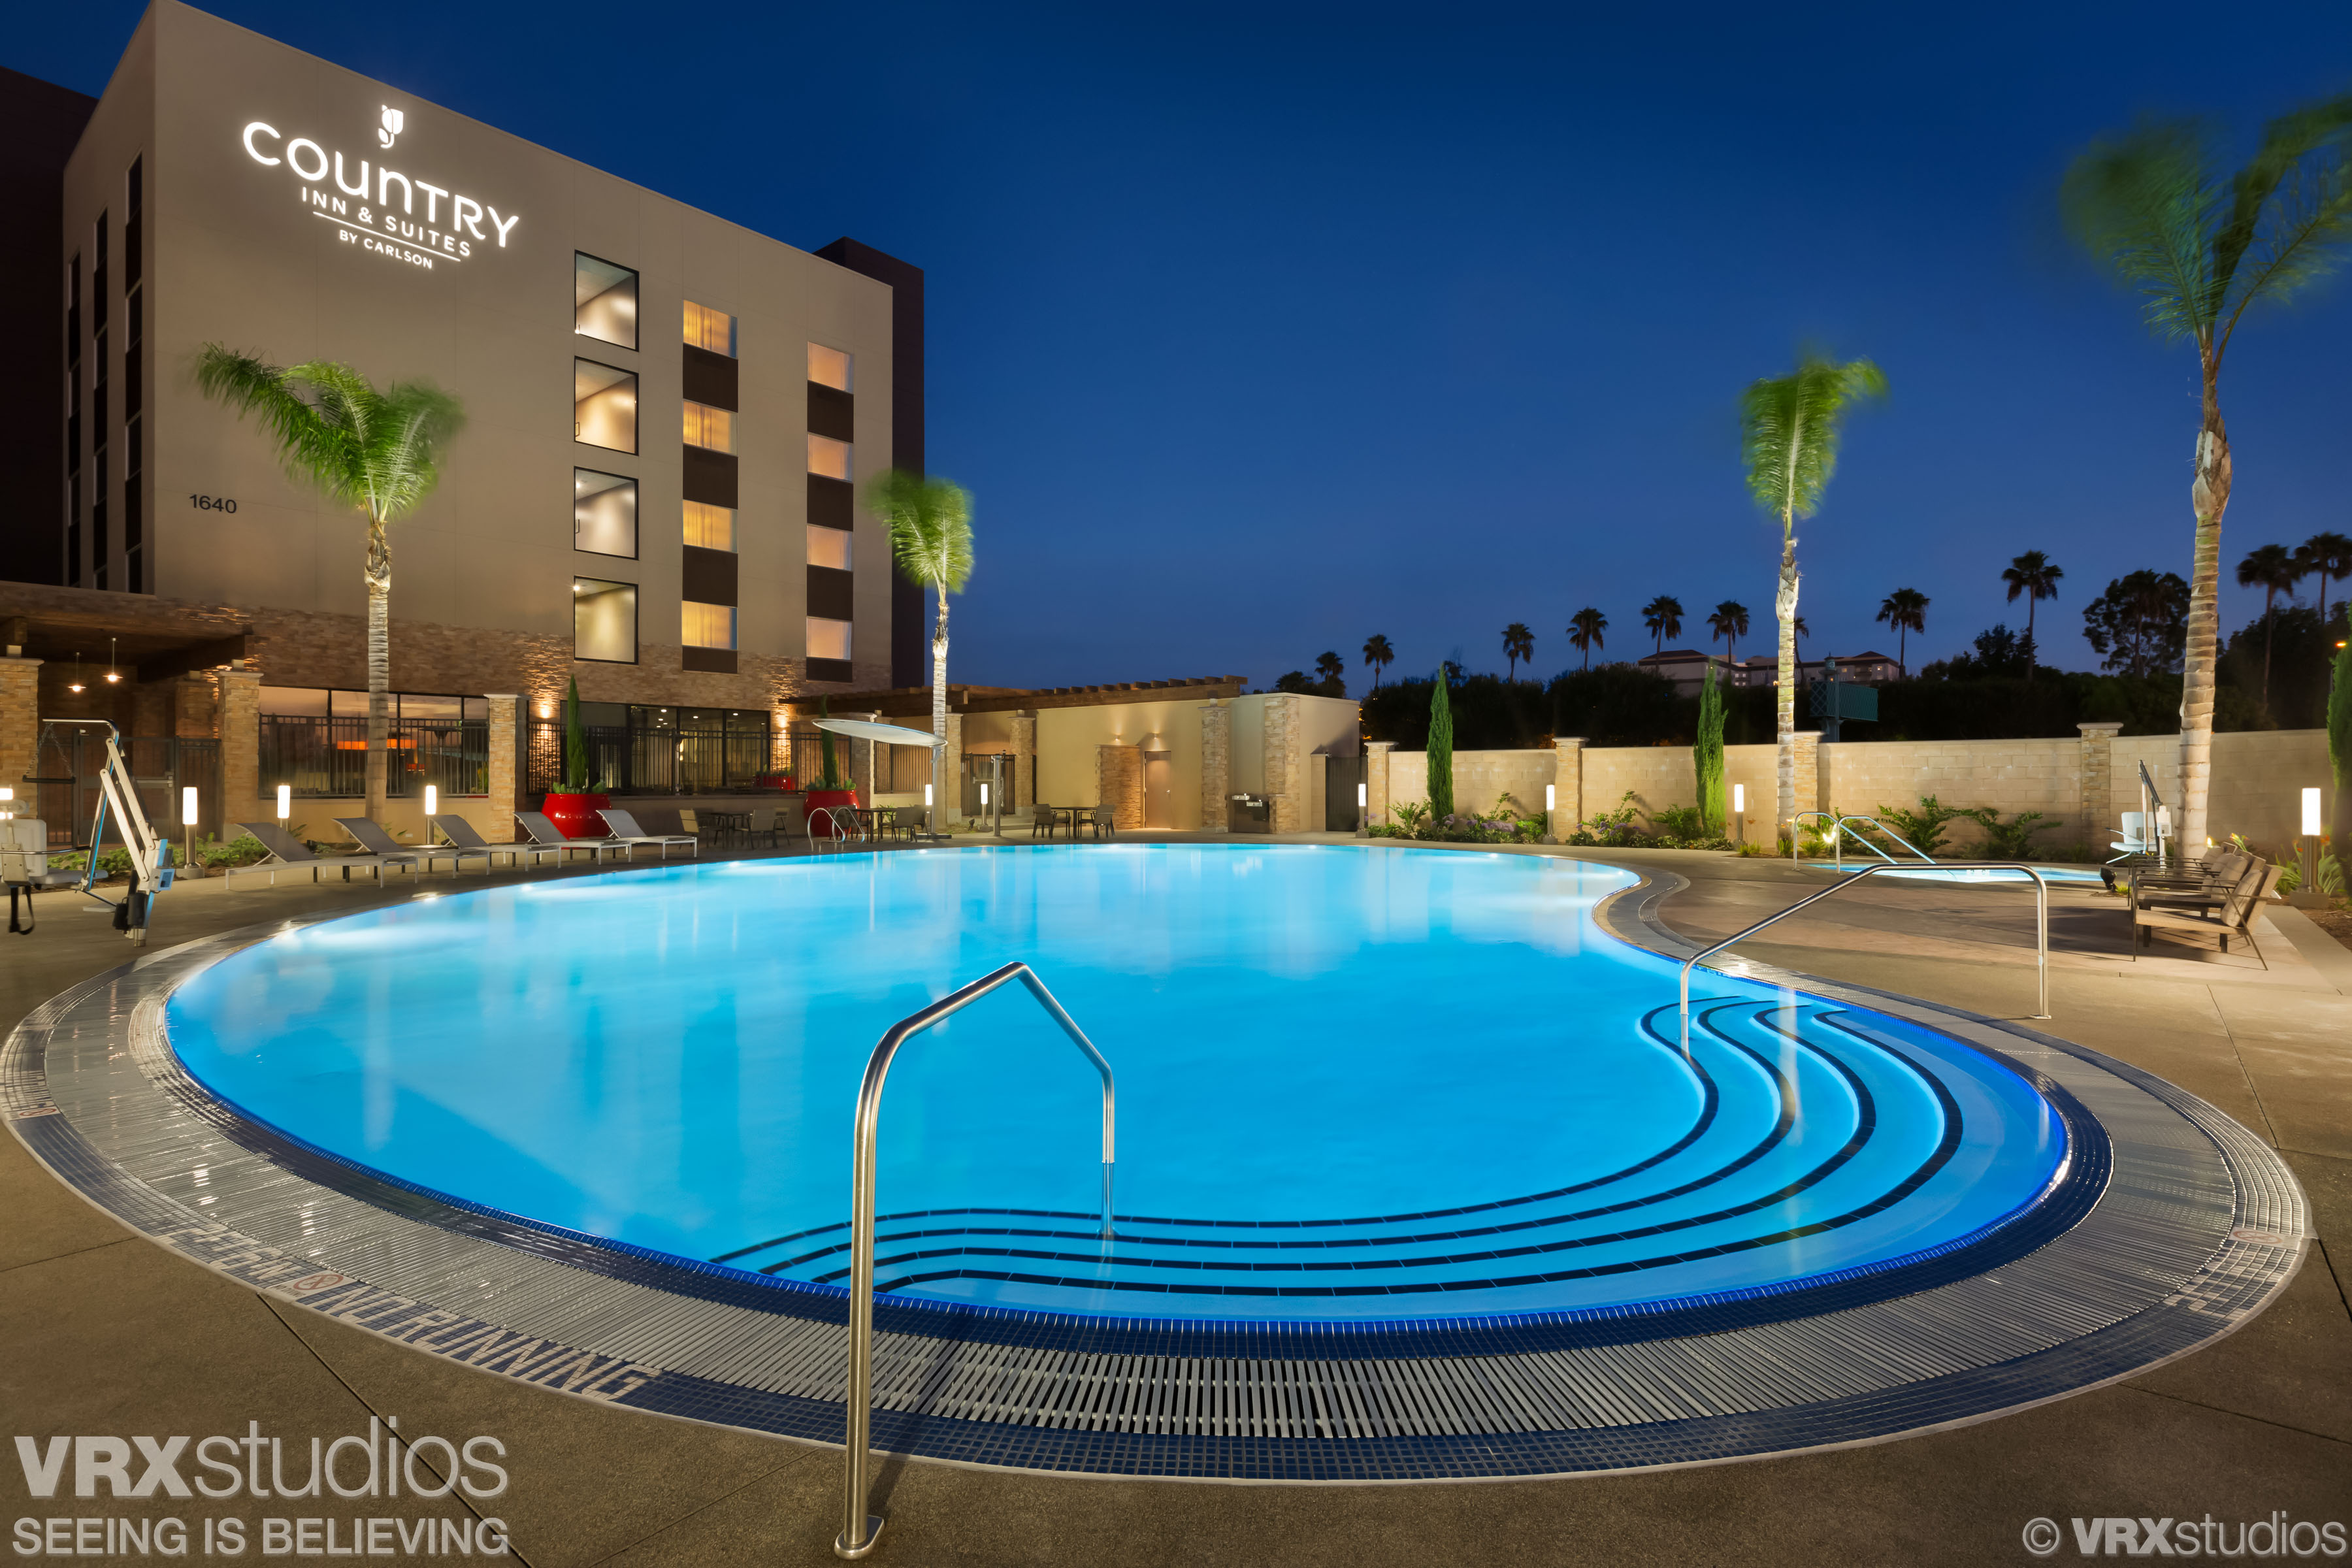 Tom DiMatteo - Hotel and Architectural Photographer - Country Inn & Suites By Radisson, Anaheim, CA